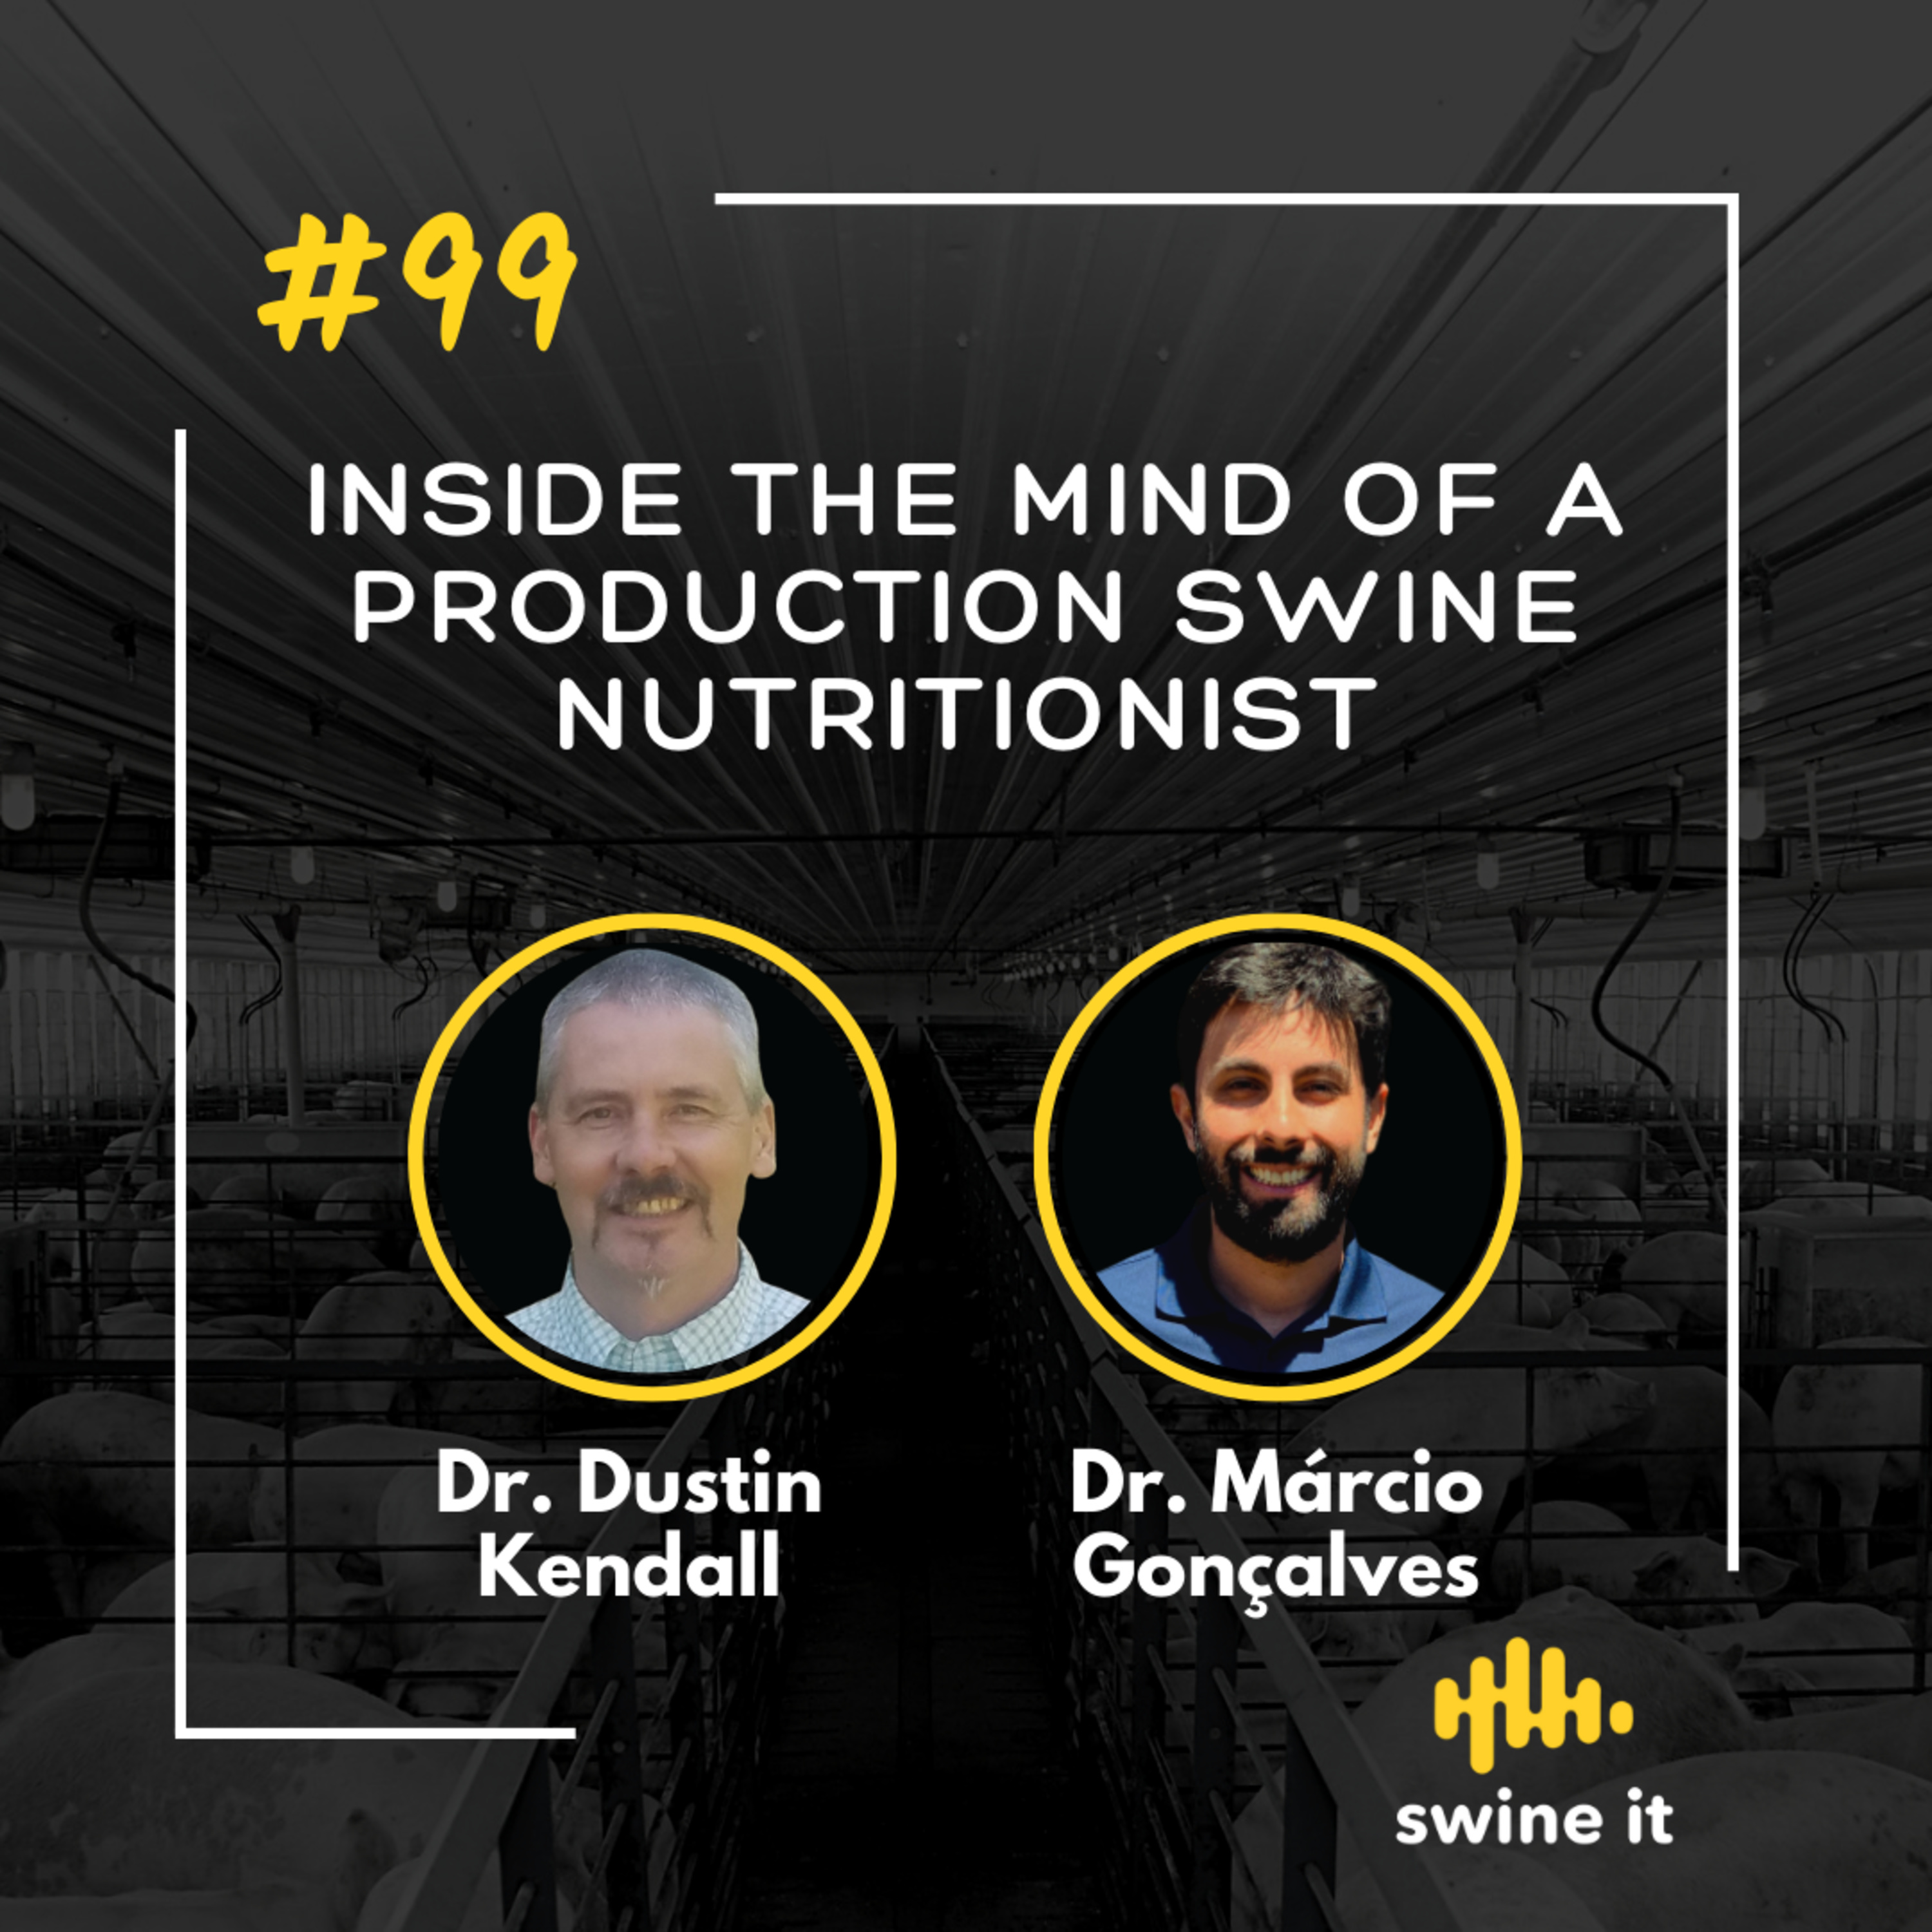 Inside the mind of a production swine nutritionist - Dr. Dustin Kendall